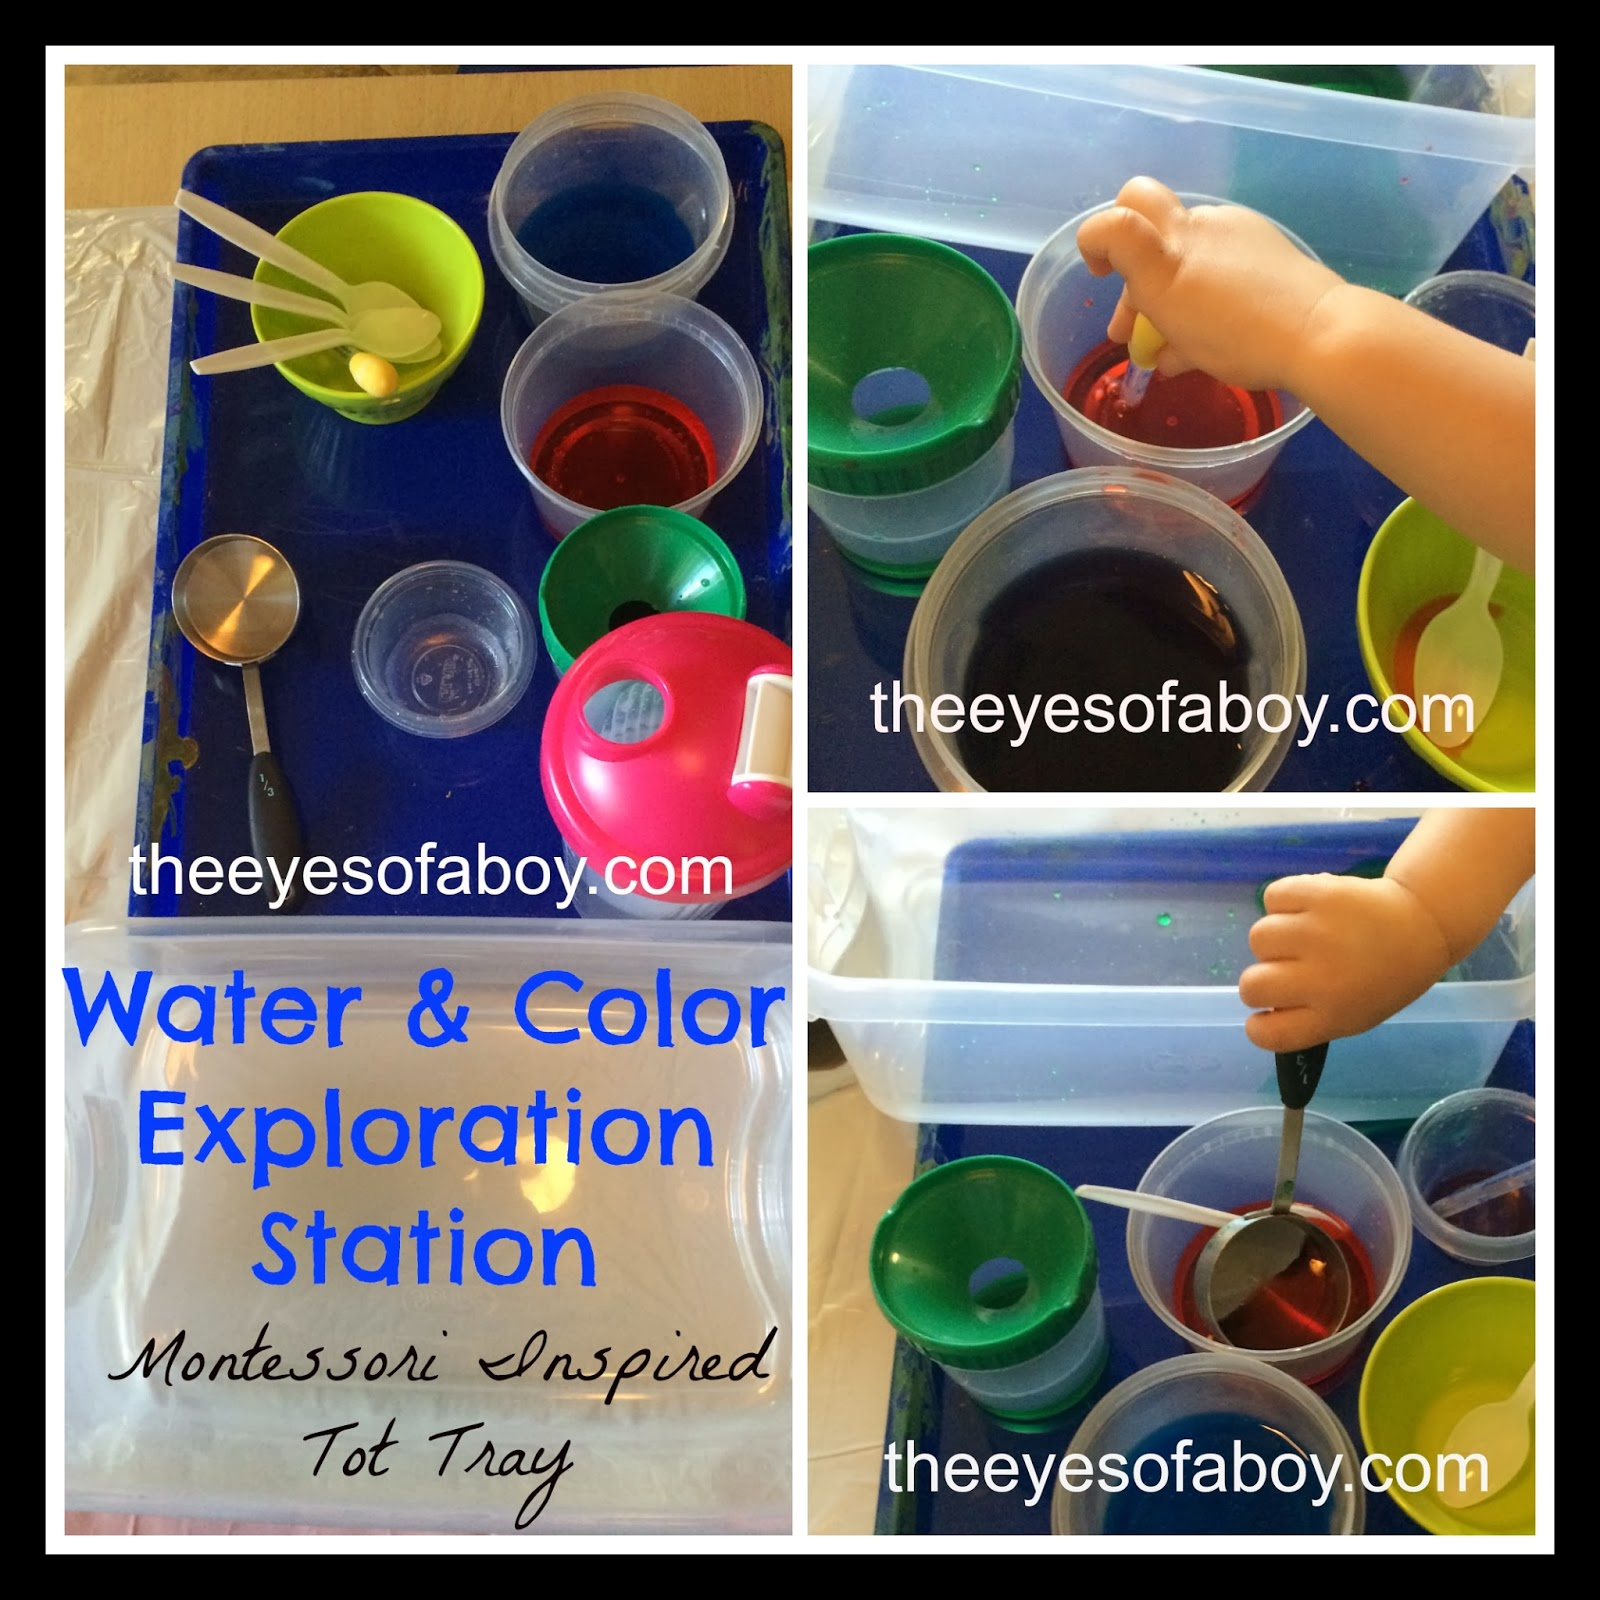 Water and Color Exploration Station - water sensory tray for toddlers and kids - Montessori inspired